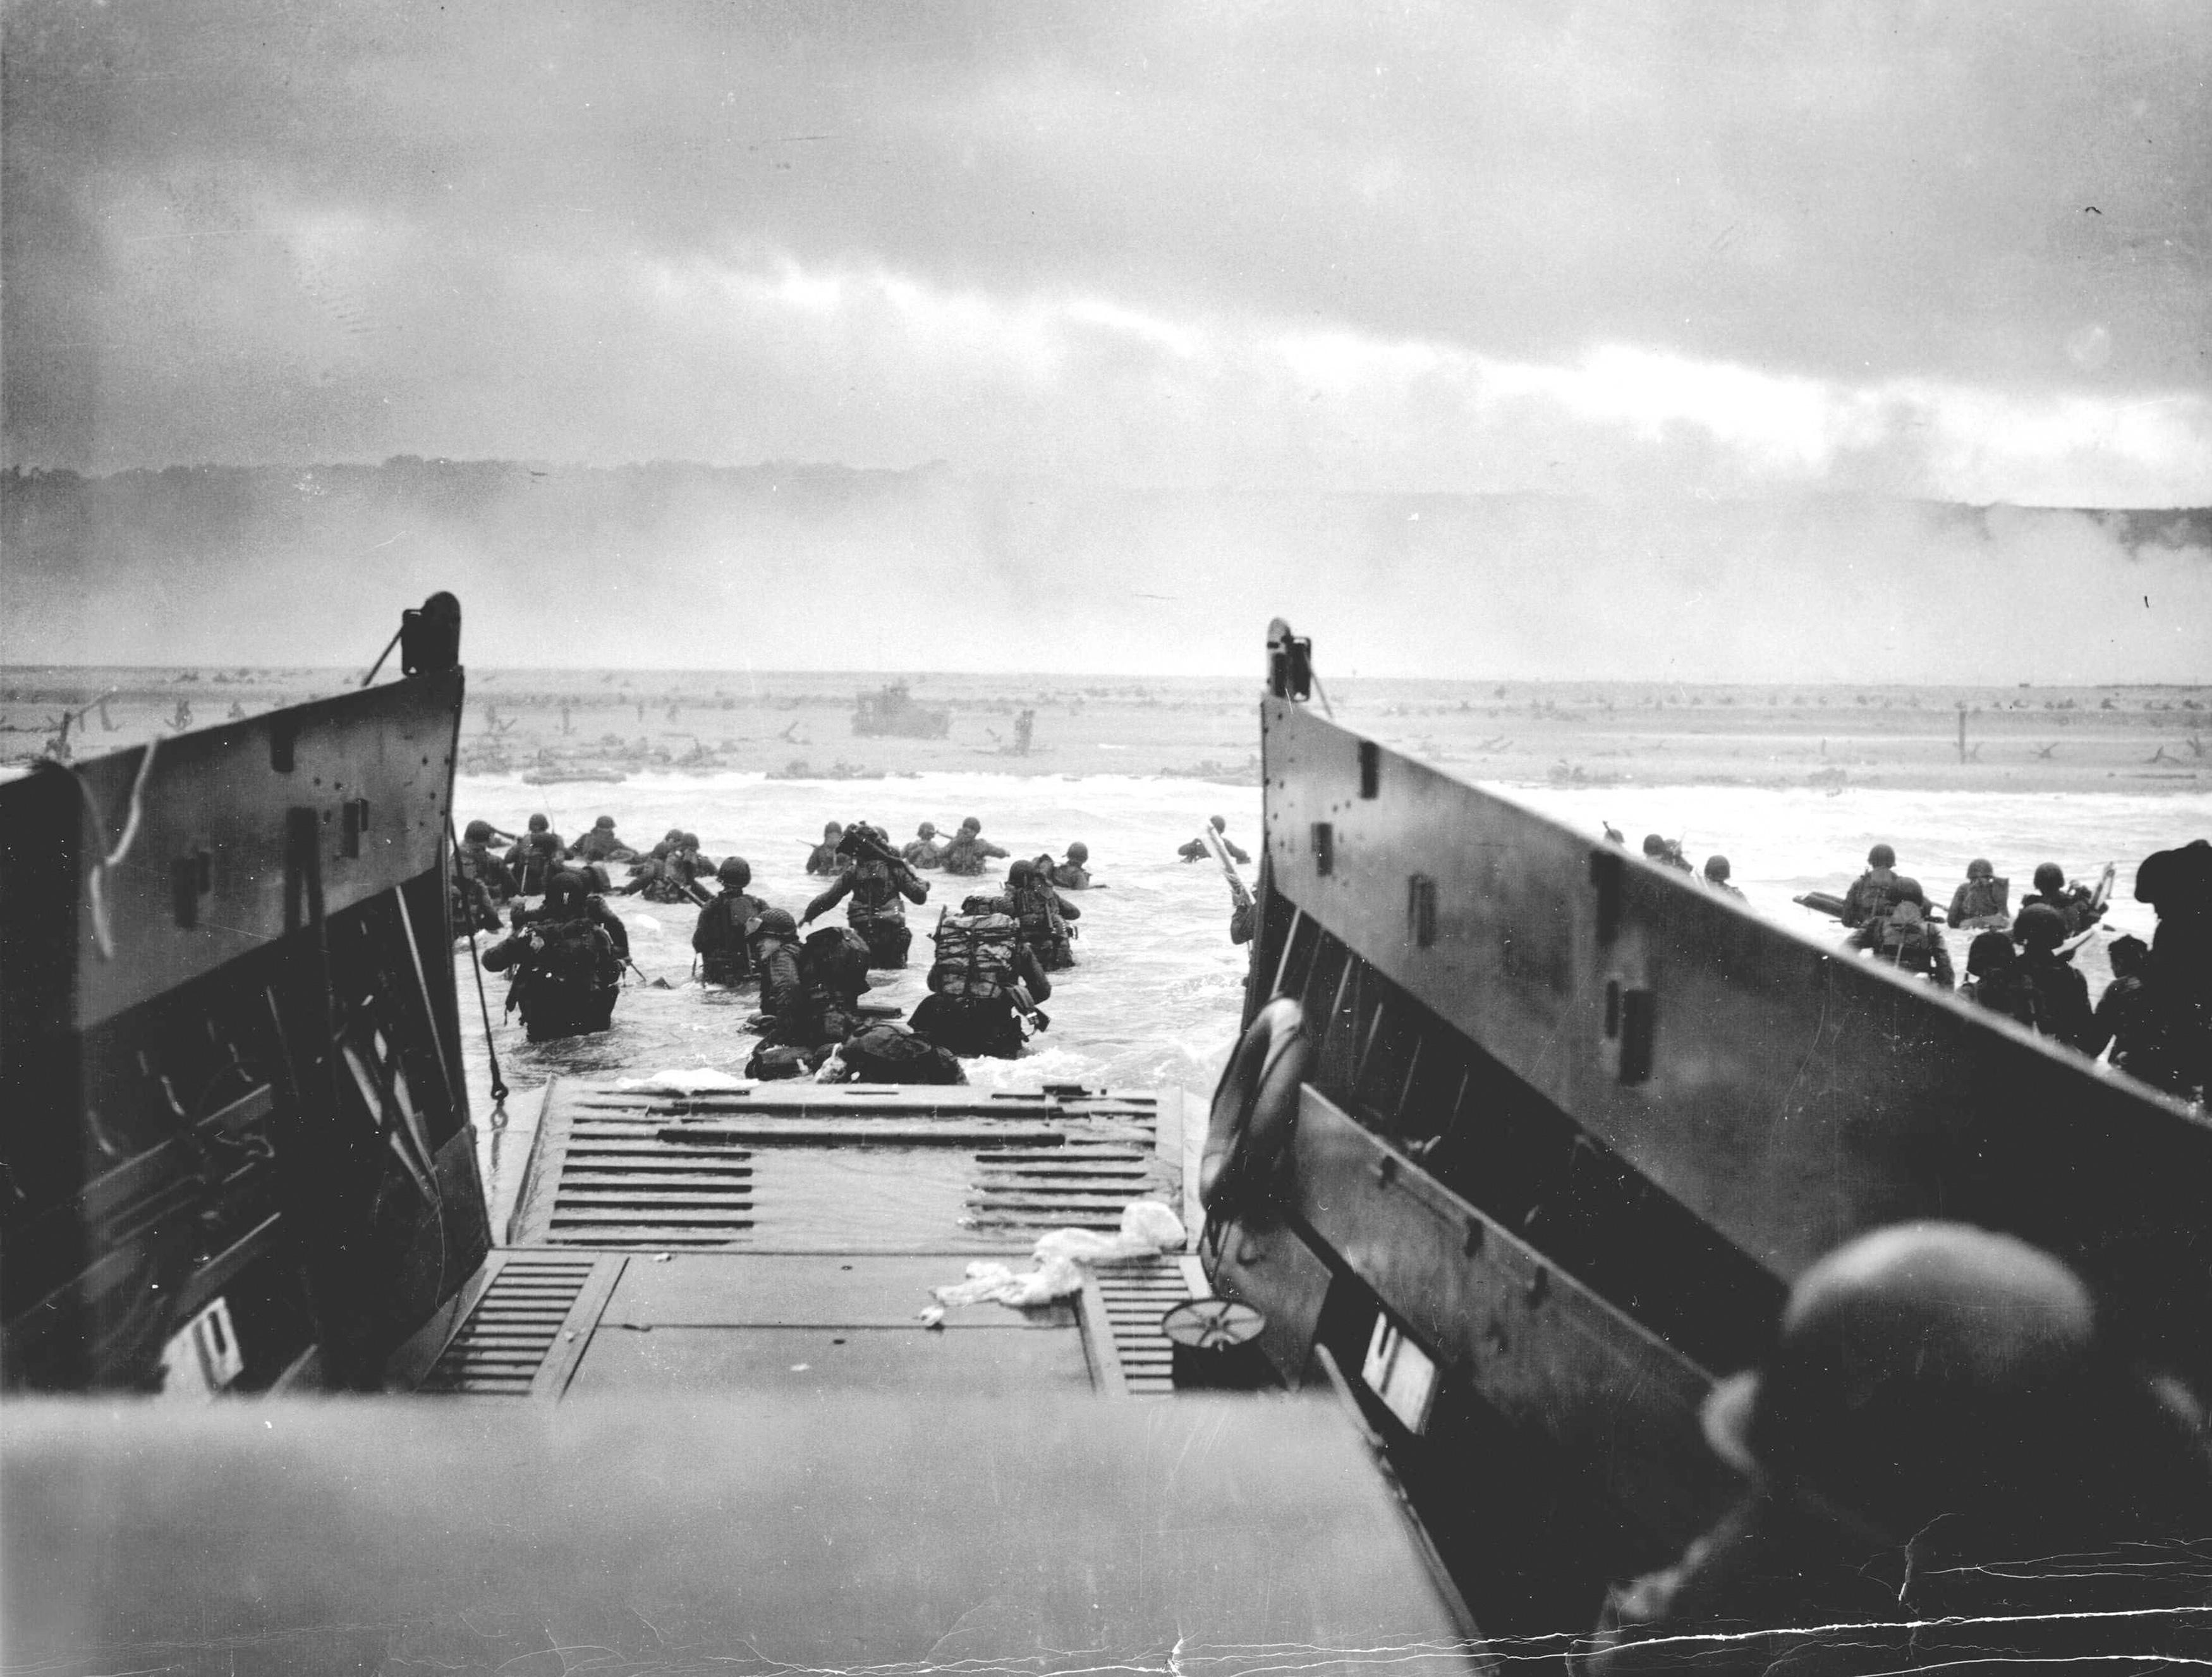 D Day Quotes D Day' Quotes: 20 Memorial Sayings To Honor Sacrifice Of Troops On  D Day Quotes